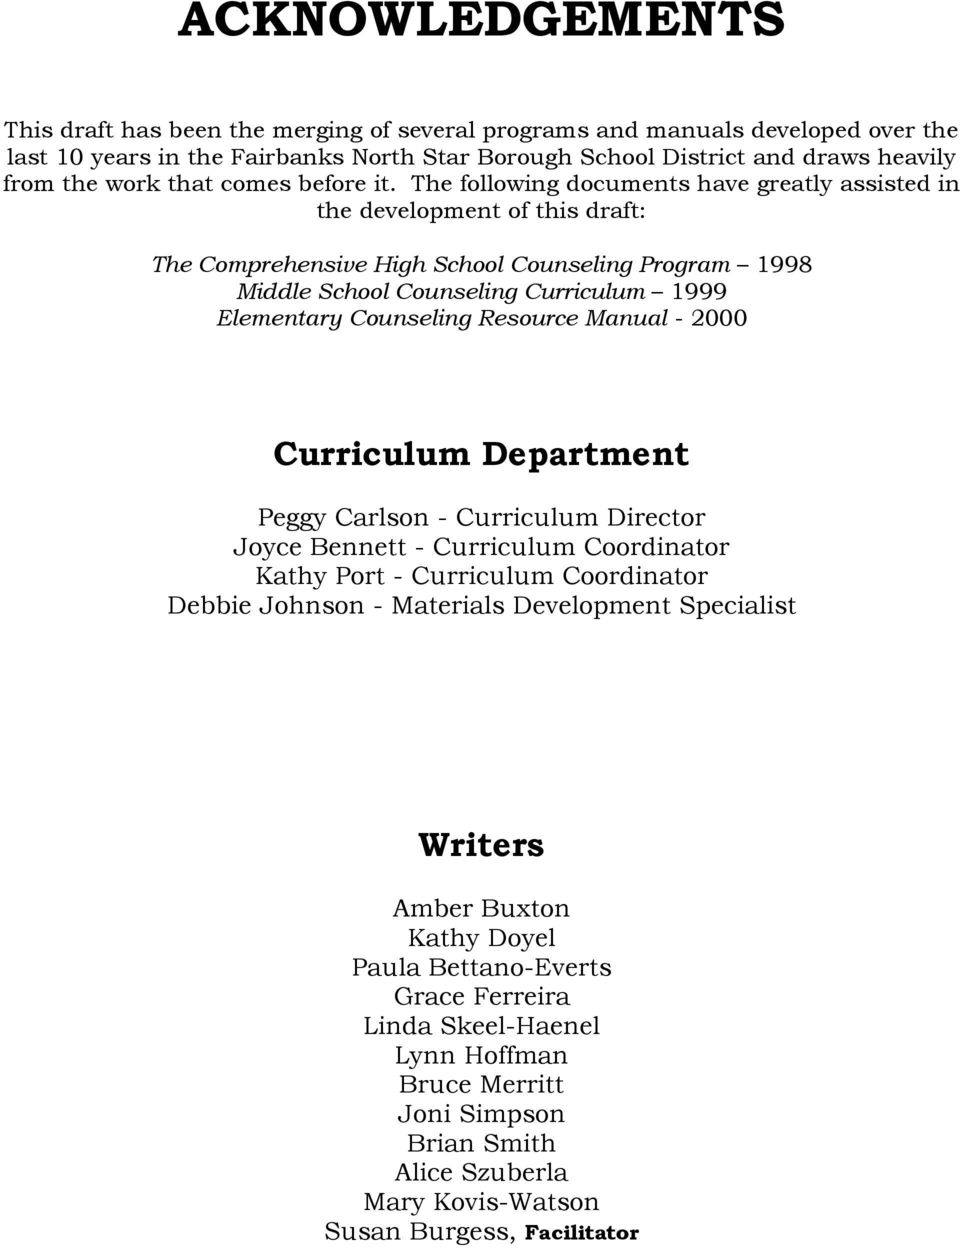 The following documents have greatly assisted in the development of this draft: The Comprehensive High School Counseling Program 1998 Middle School Counseling Curriculum 1999 Elementary Counseling